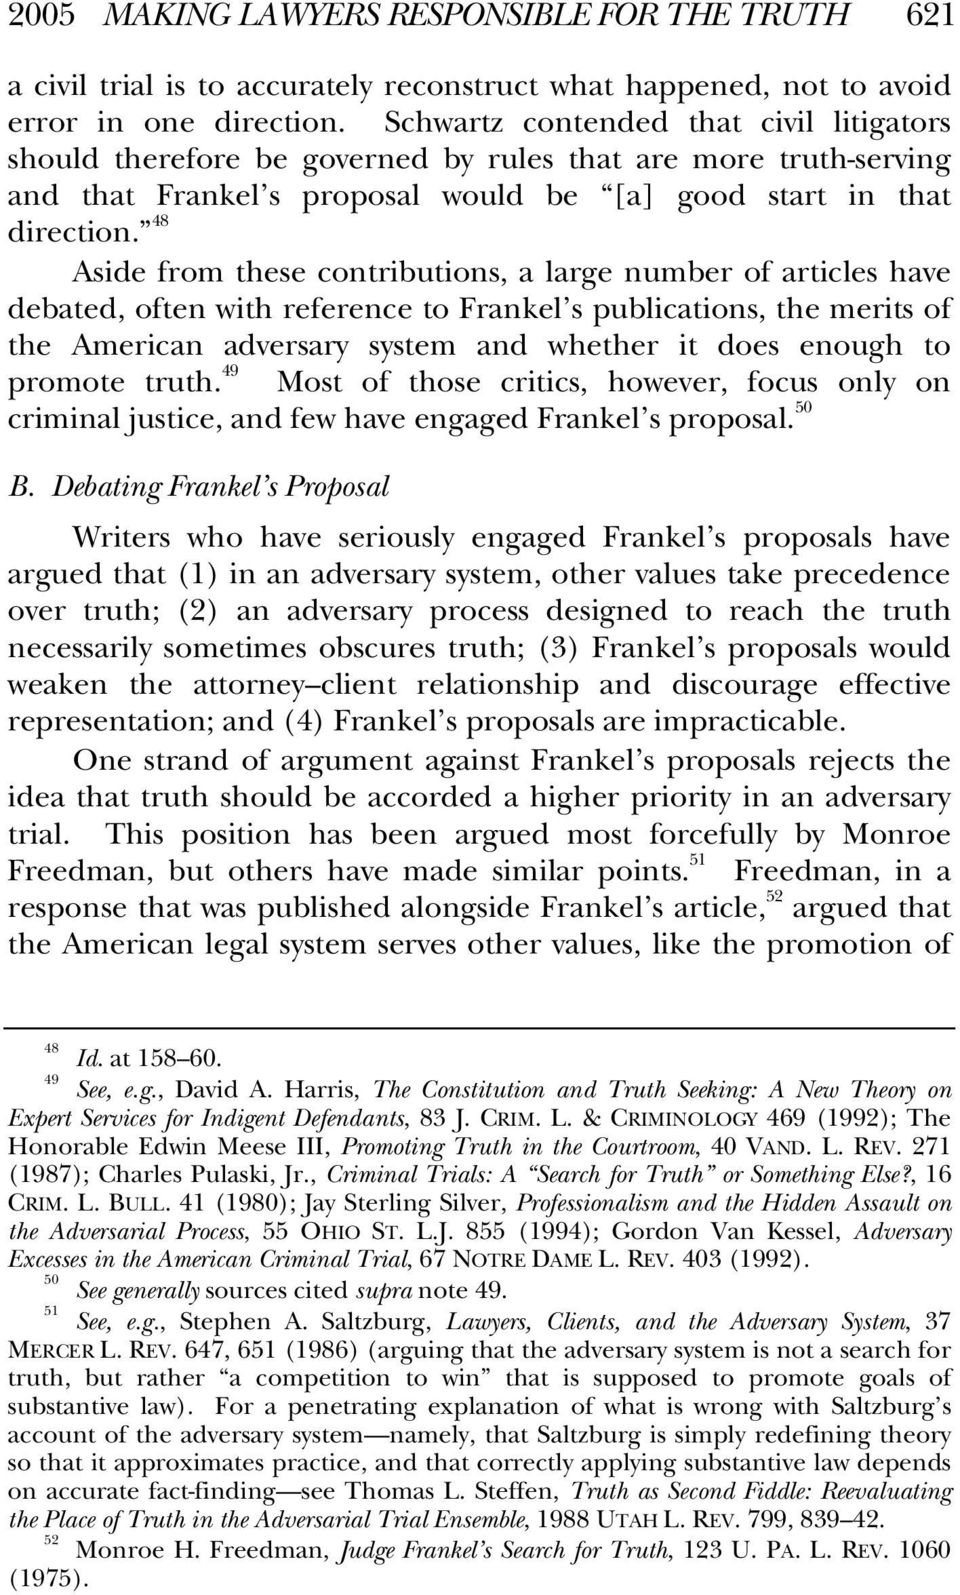 48 Aside from these contributions, a large number of articles have debated, often with reference to Frankel s publications, the merits of the American adversary system and whether it does enough to